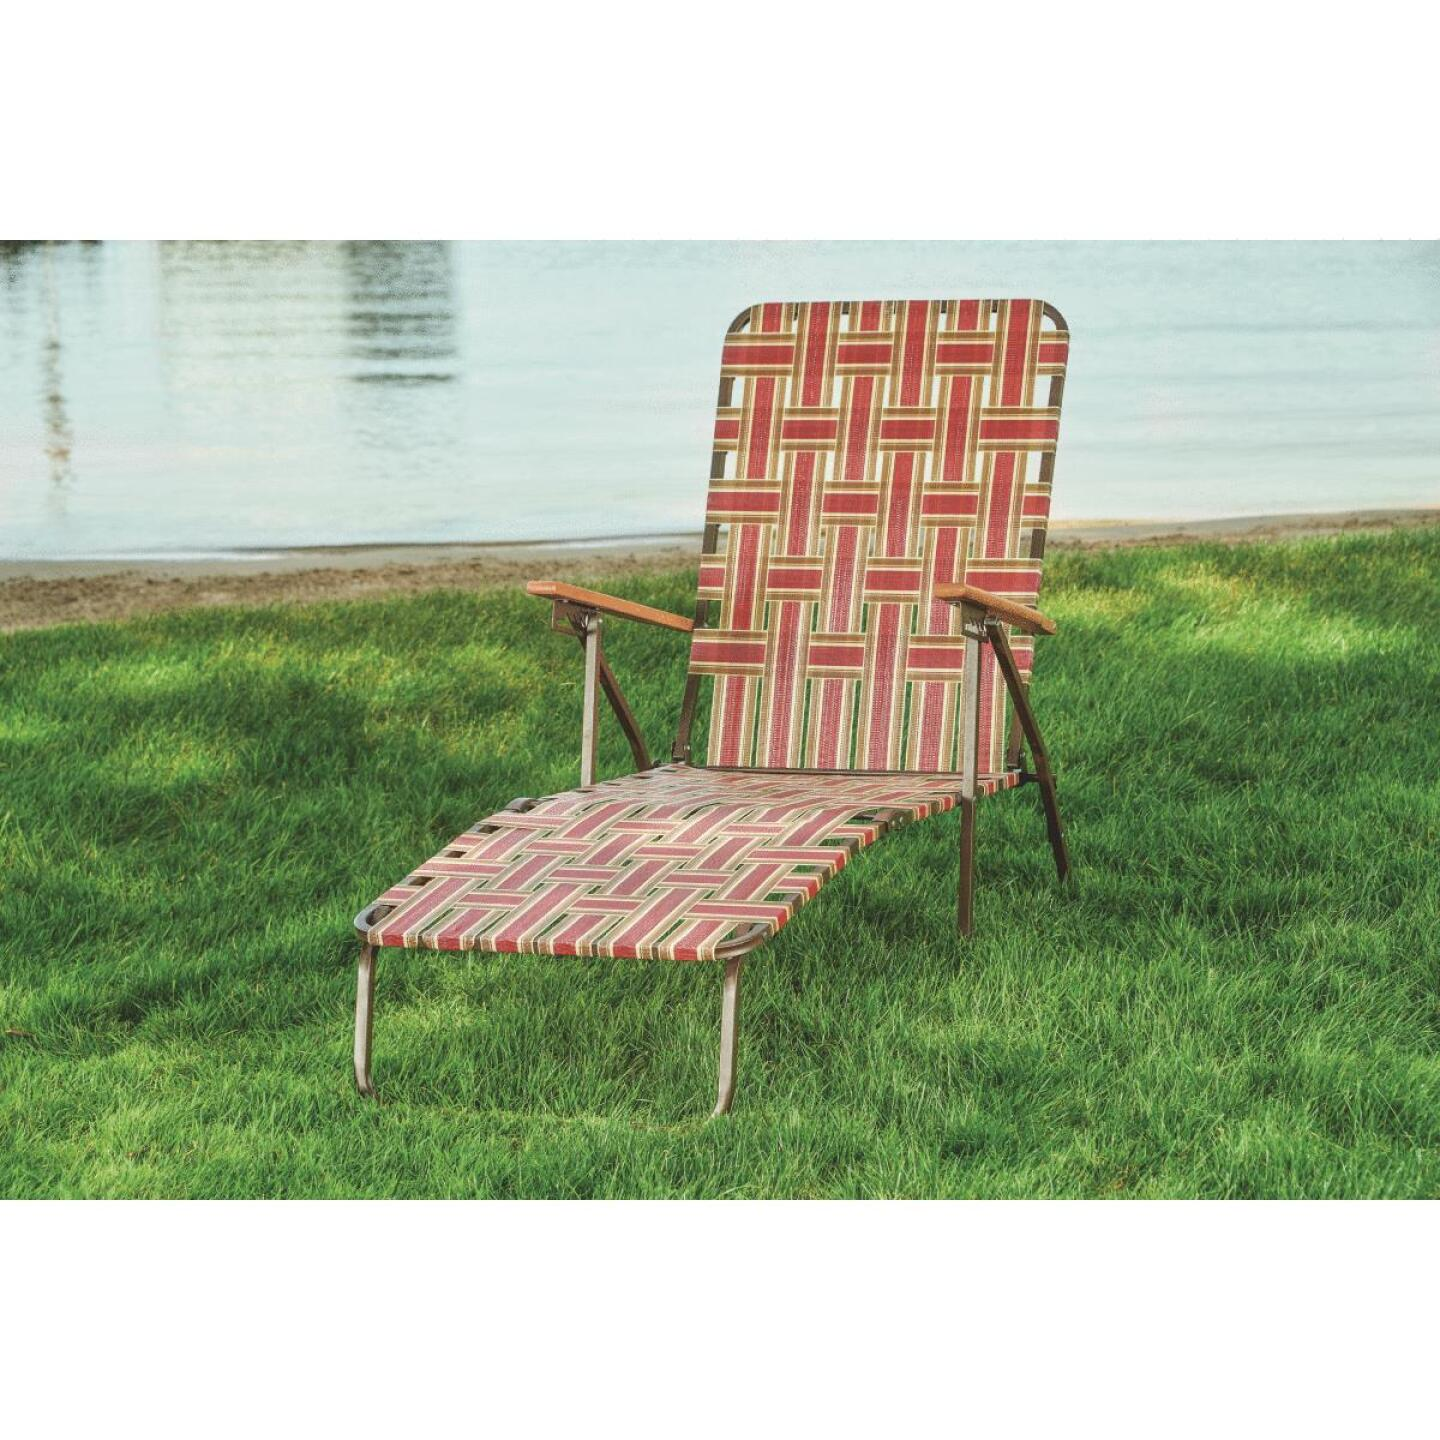 Outdoor Expressions Rust & Beige Web Chaise Lounge Image 3